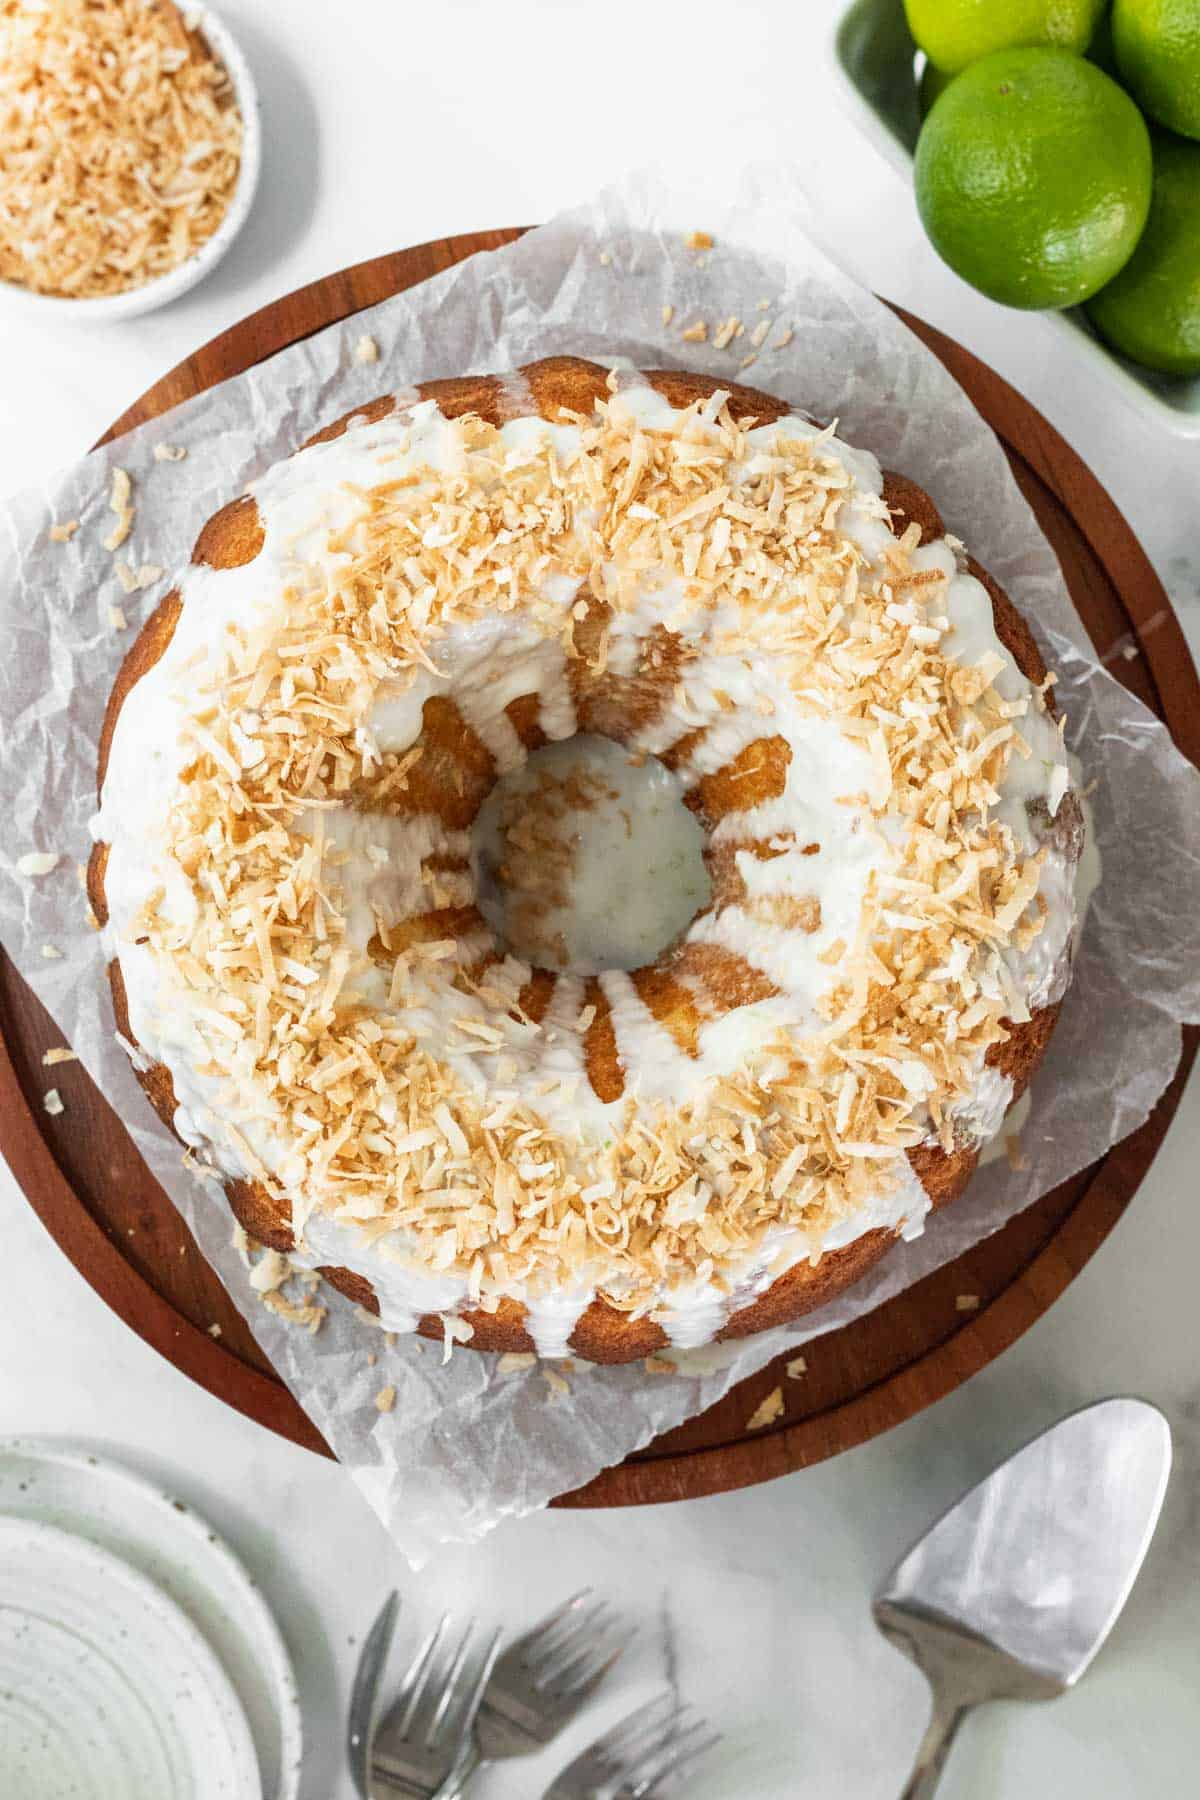 Coconut lime drizzle cake garnished with toasted coconut on a wooden cake stand with fresh limes around it.